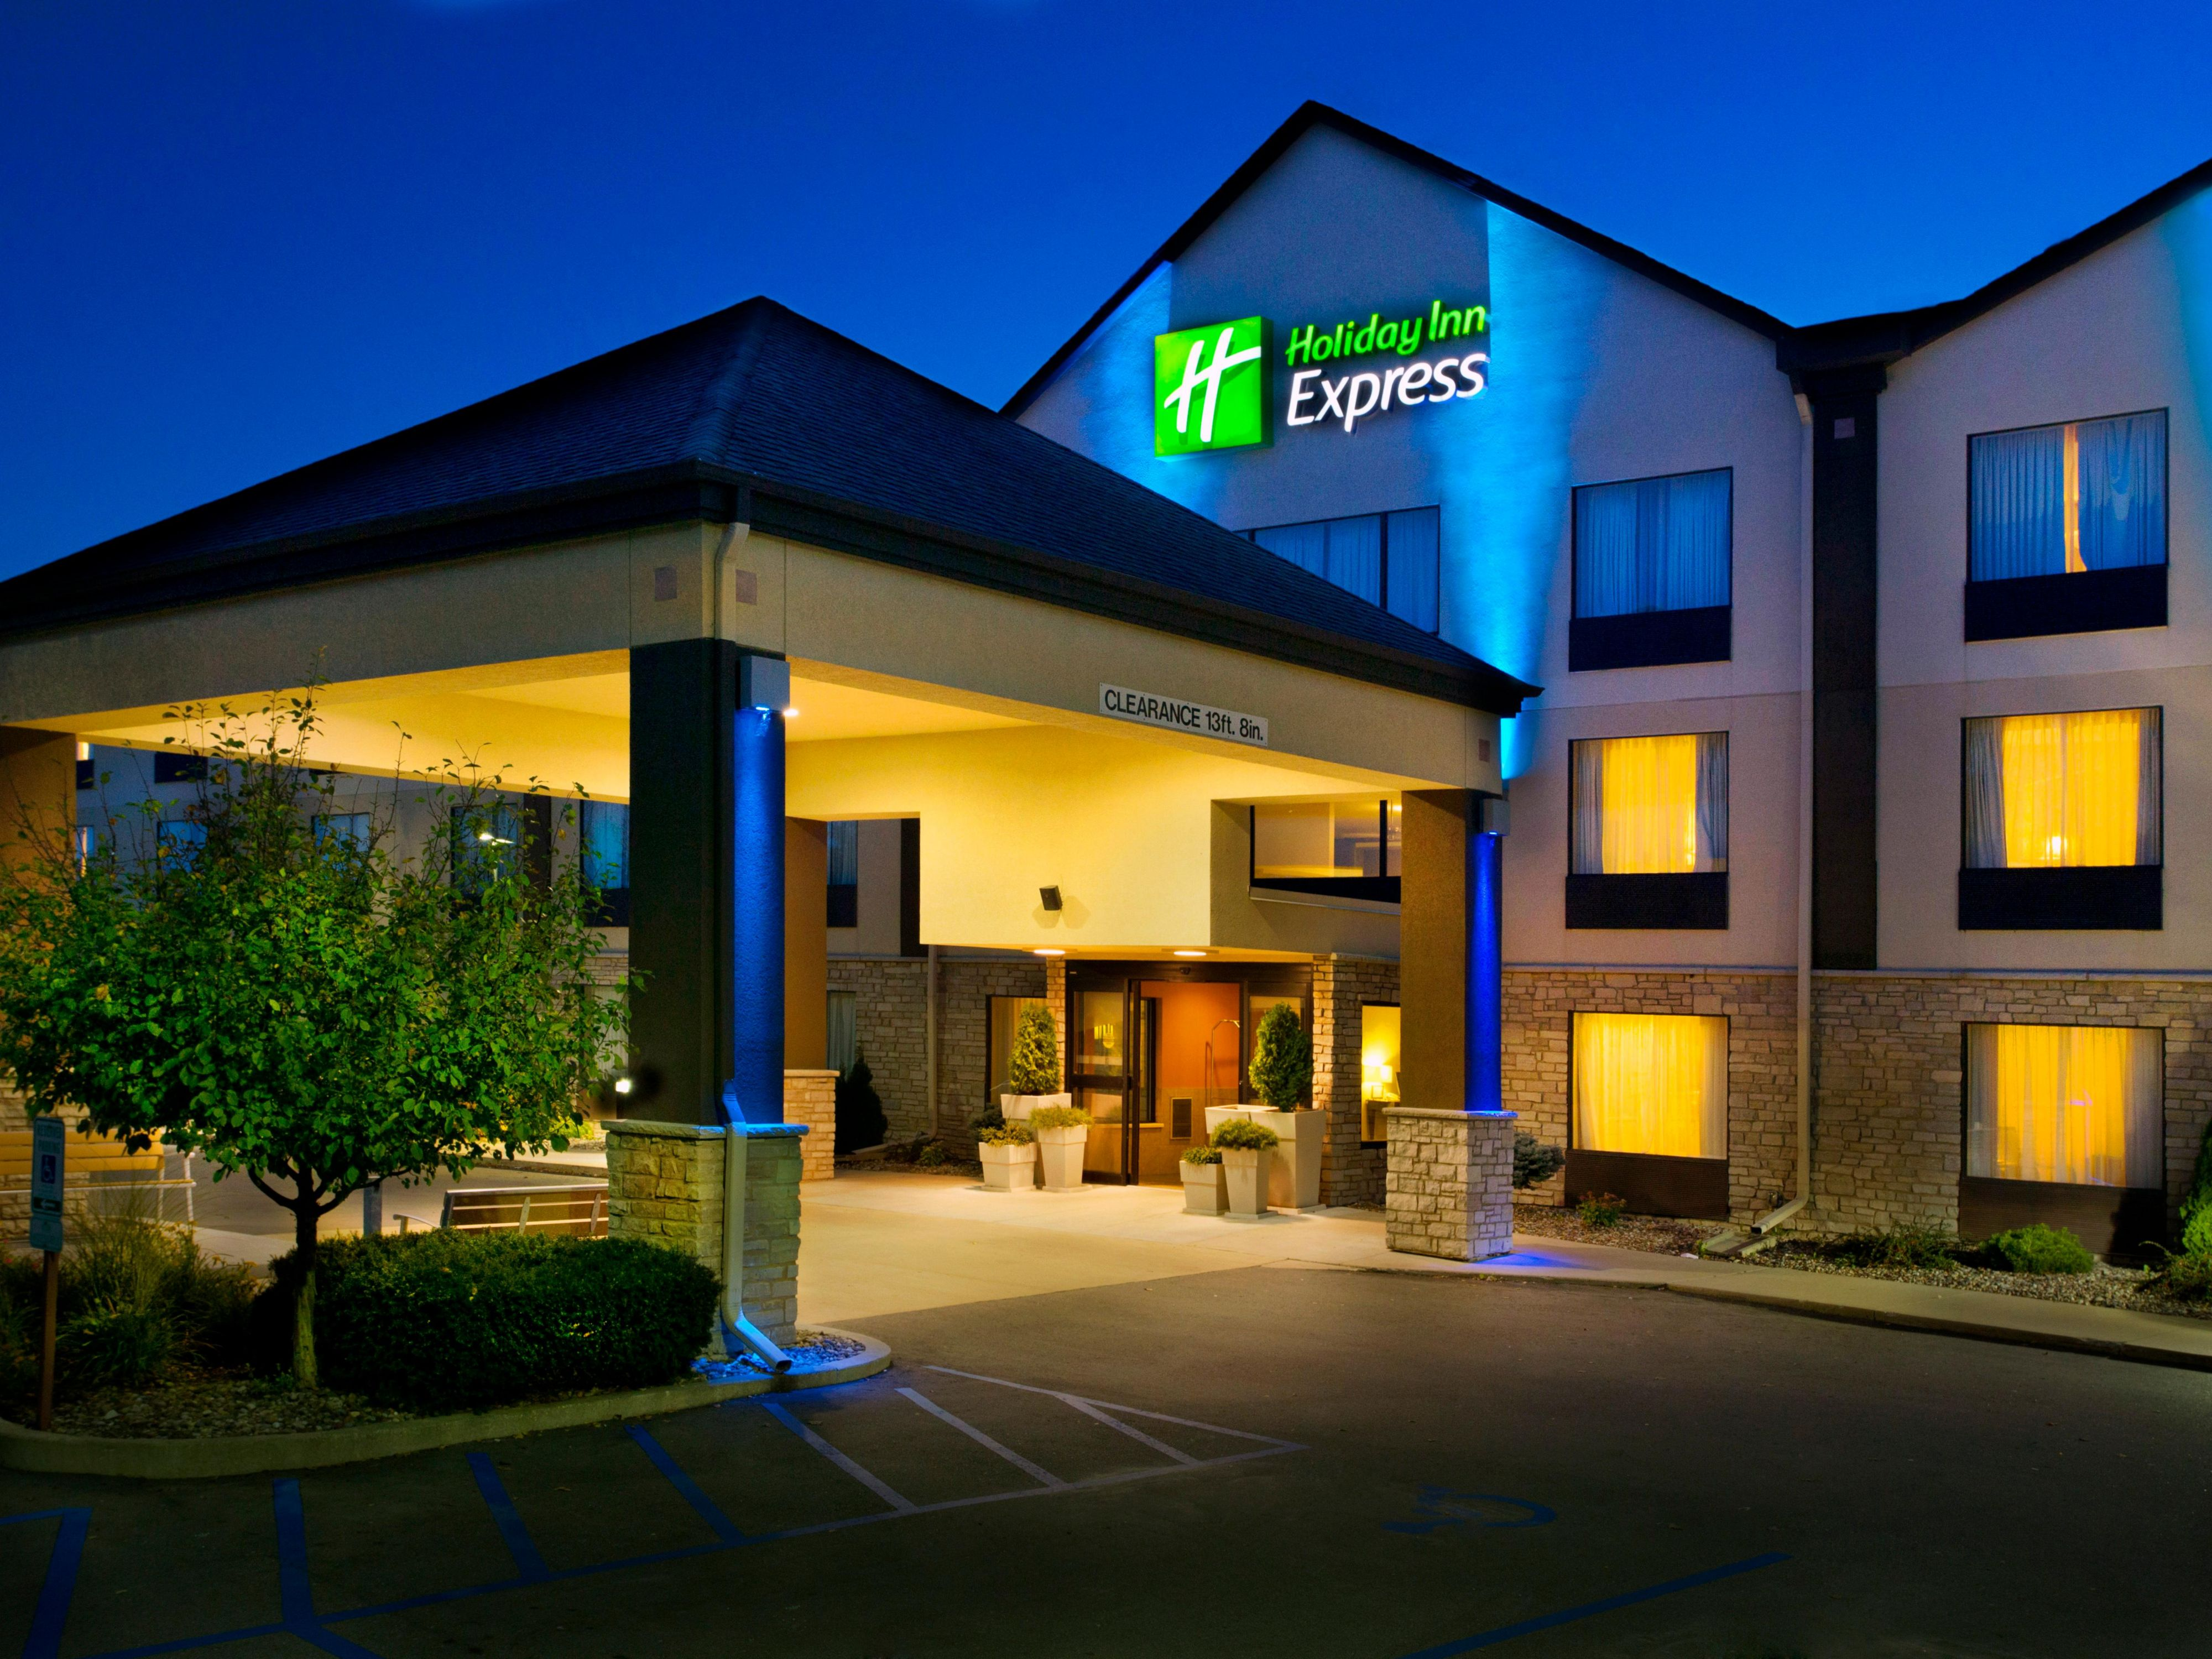 hotel onalaska by hotels express hoteldetail crosse area comforter inn holiday rhinelander la us ihg holidayinnexpress comfort lseon en wi